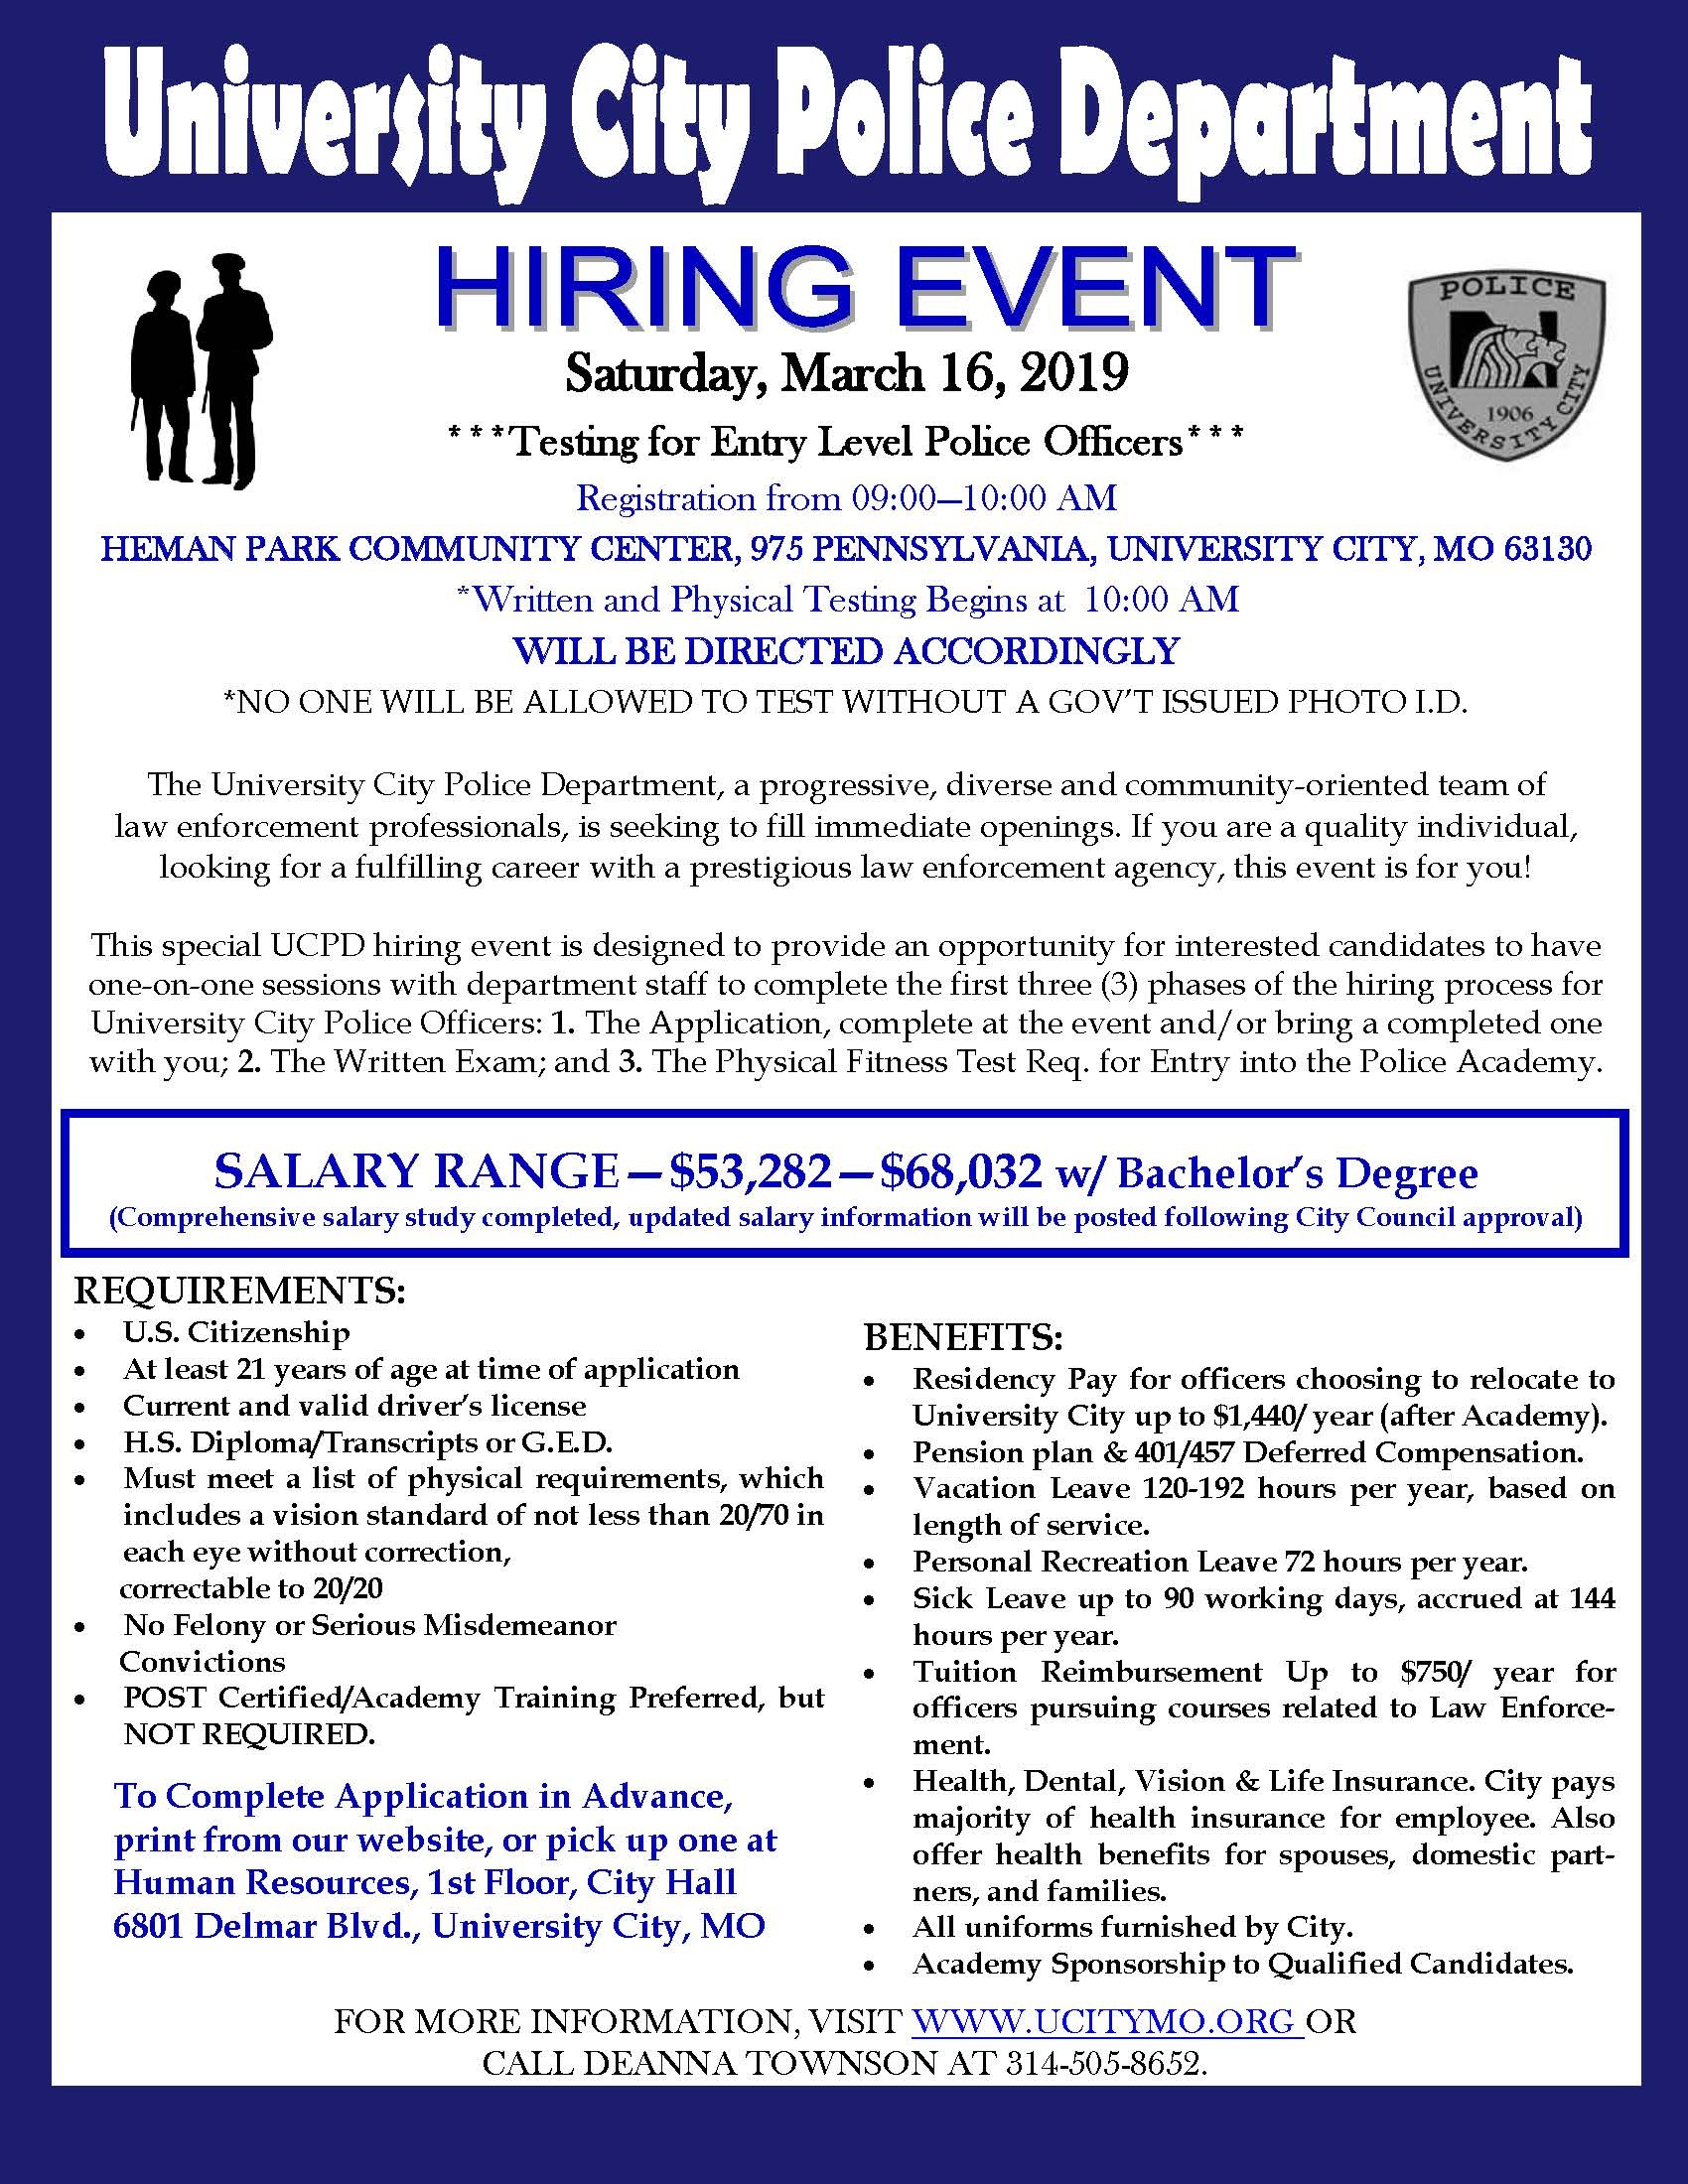 March 2019 - Hiring Event - Police Officers